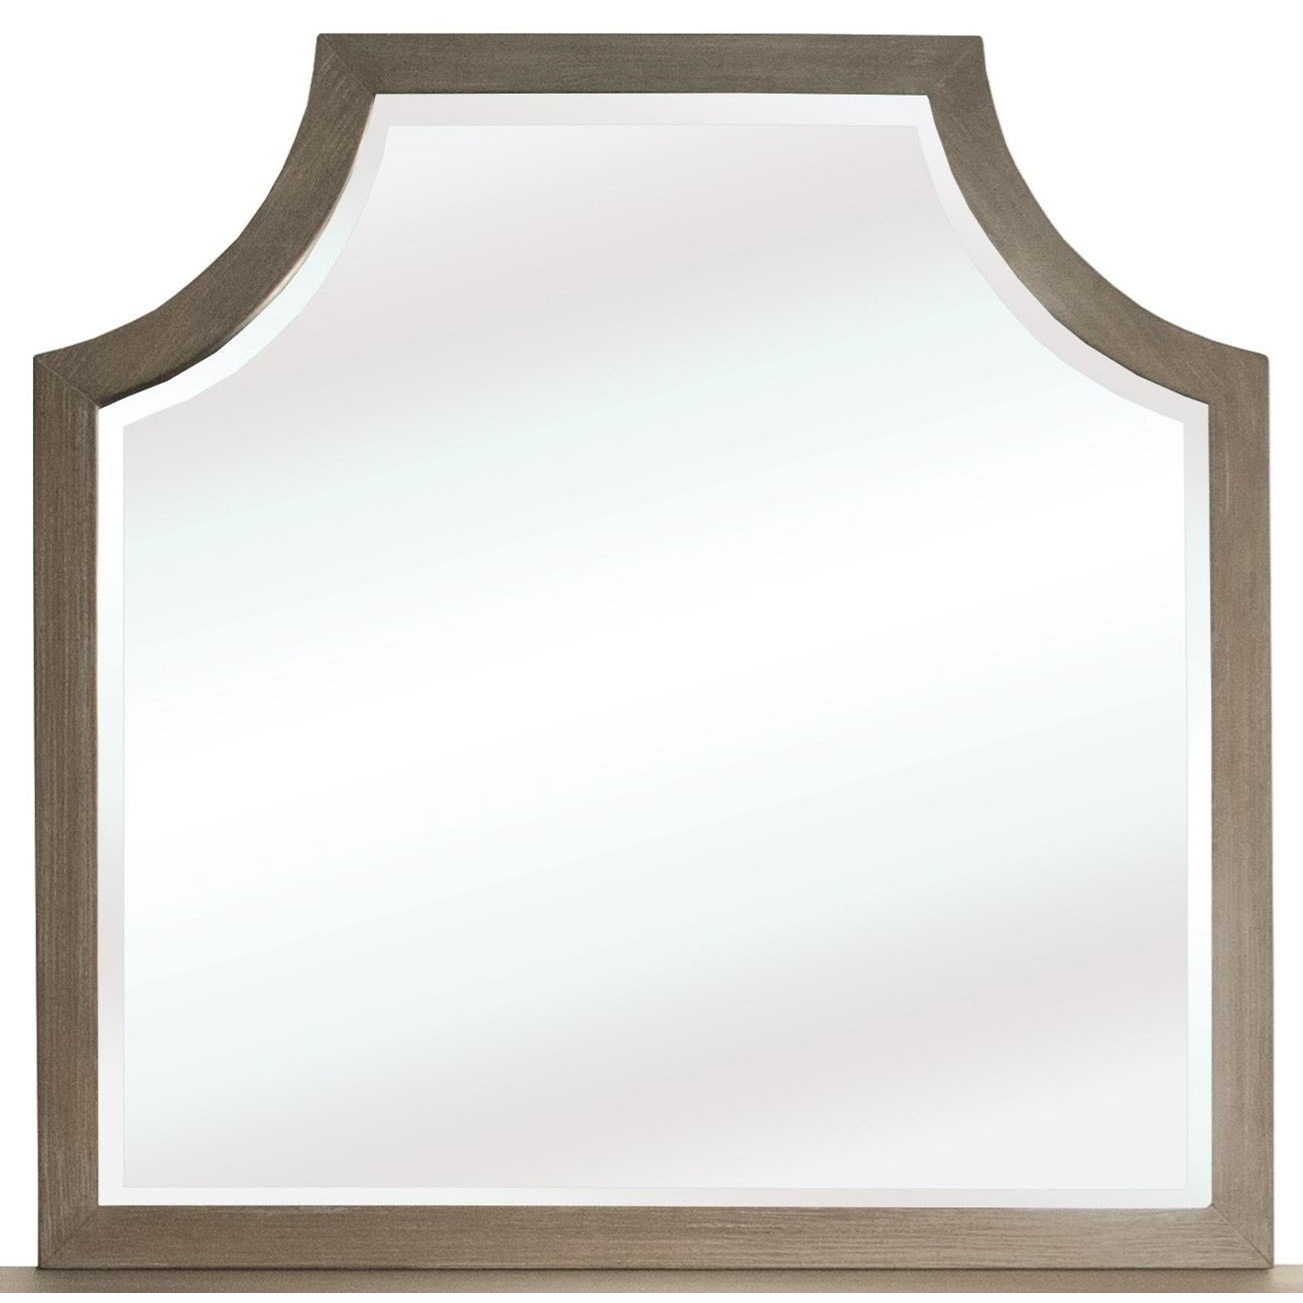 Vogue Arch Mirror by Riverside Furniture at Darvin Furniture